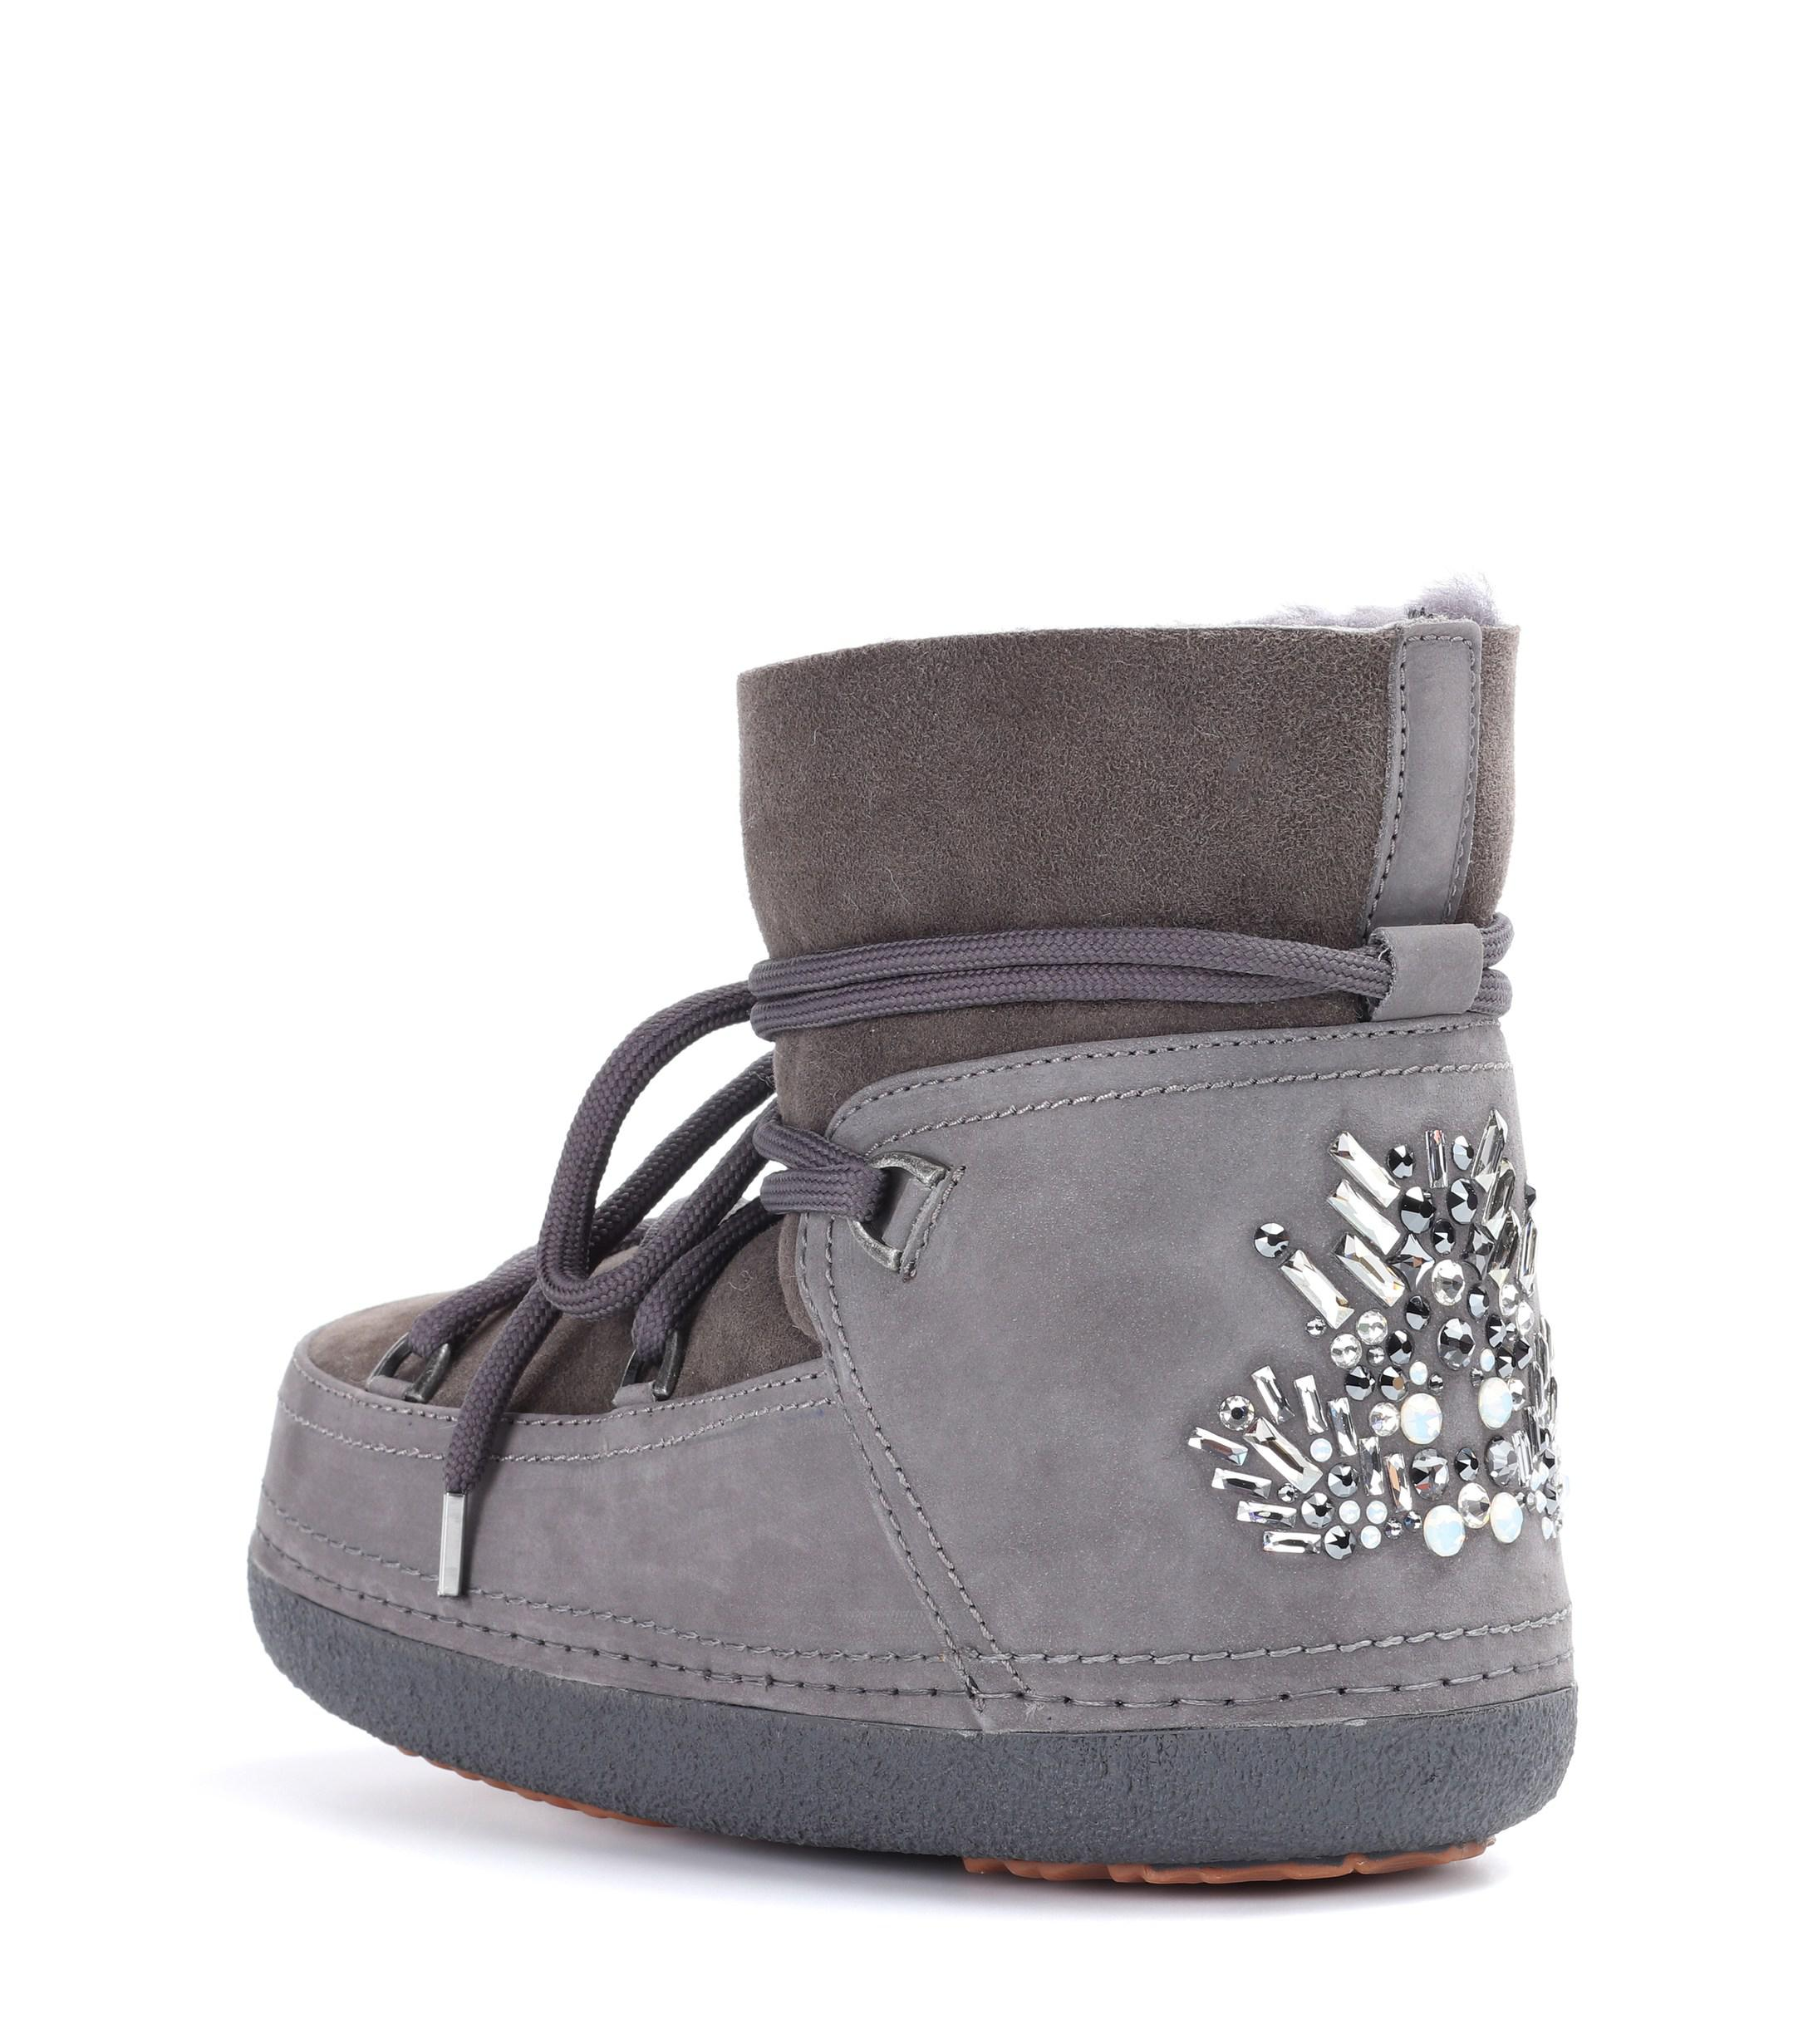 low priced 44939 cecf8 inuikii-designer-grey-Crystal-embellished-Suede-Ankle-Boots.jpeg